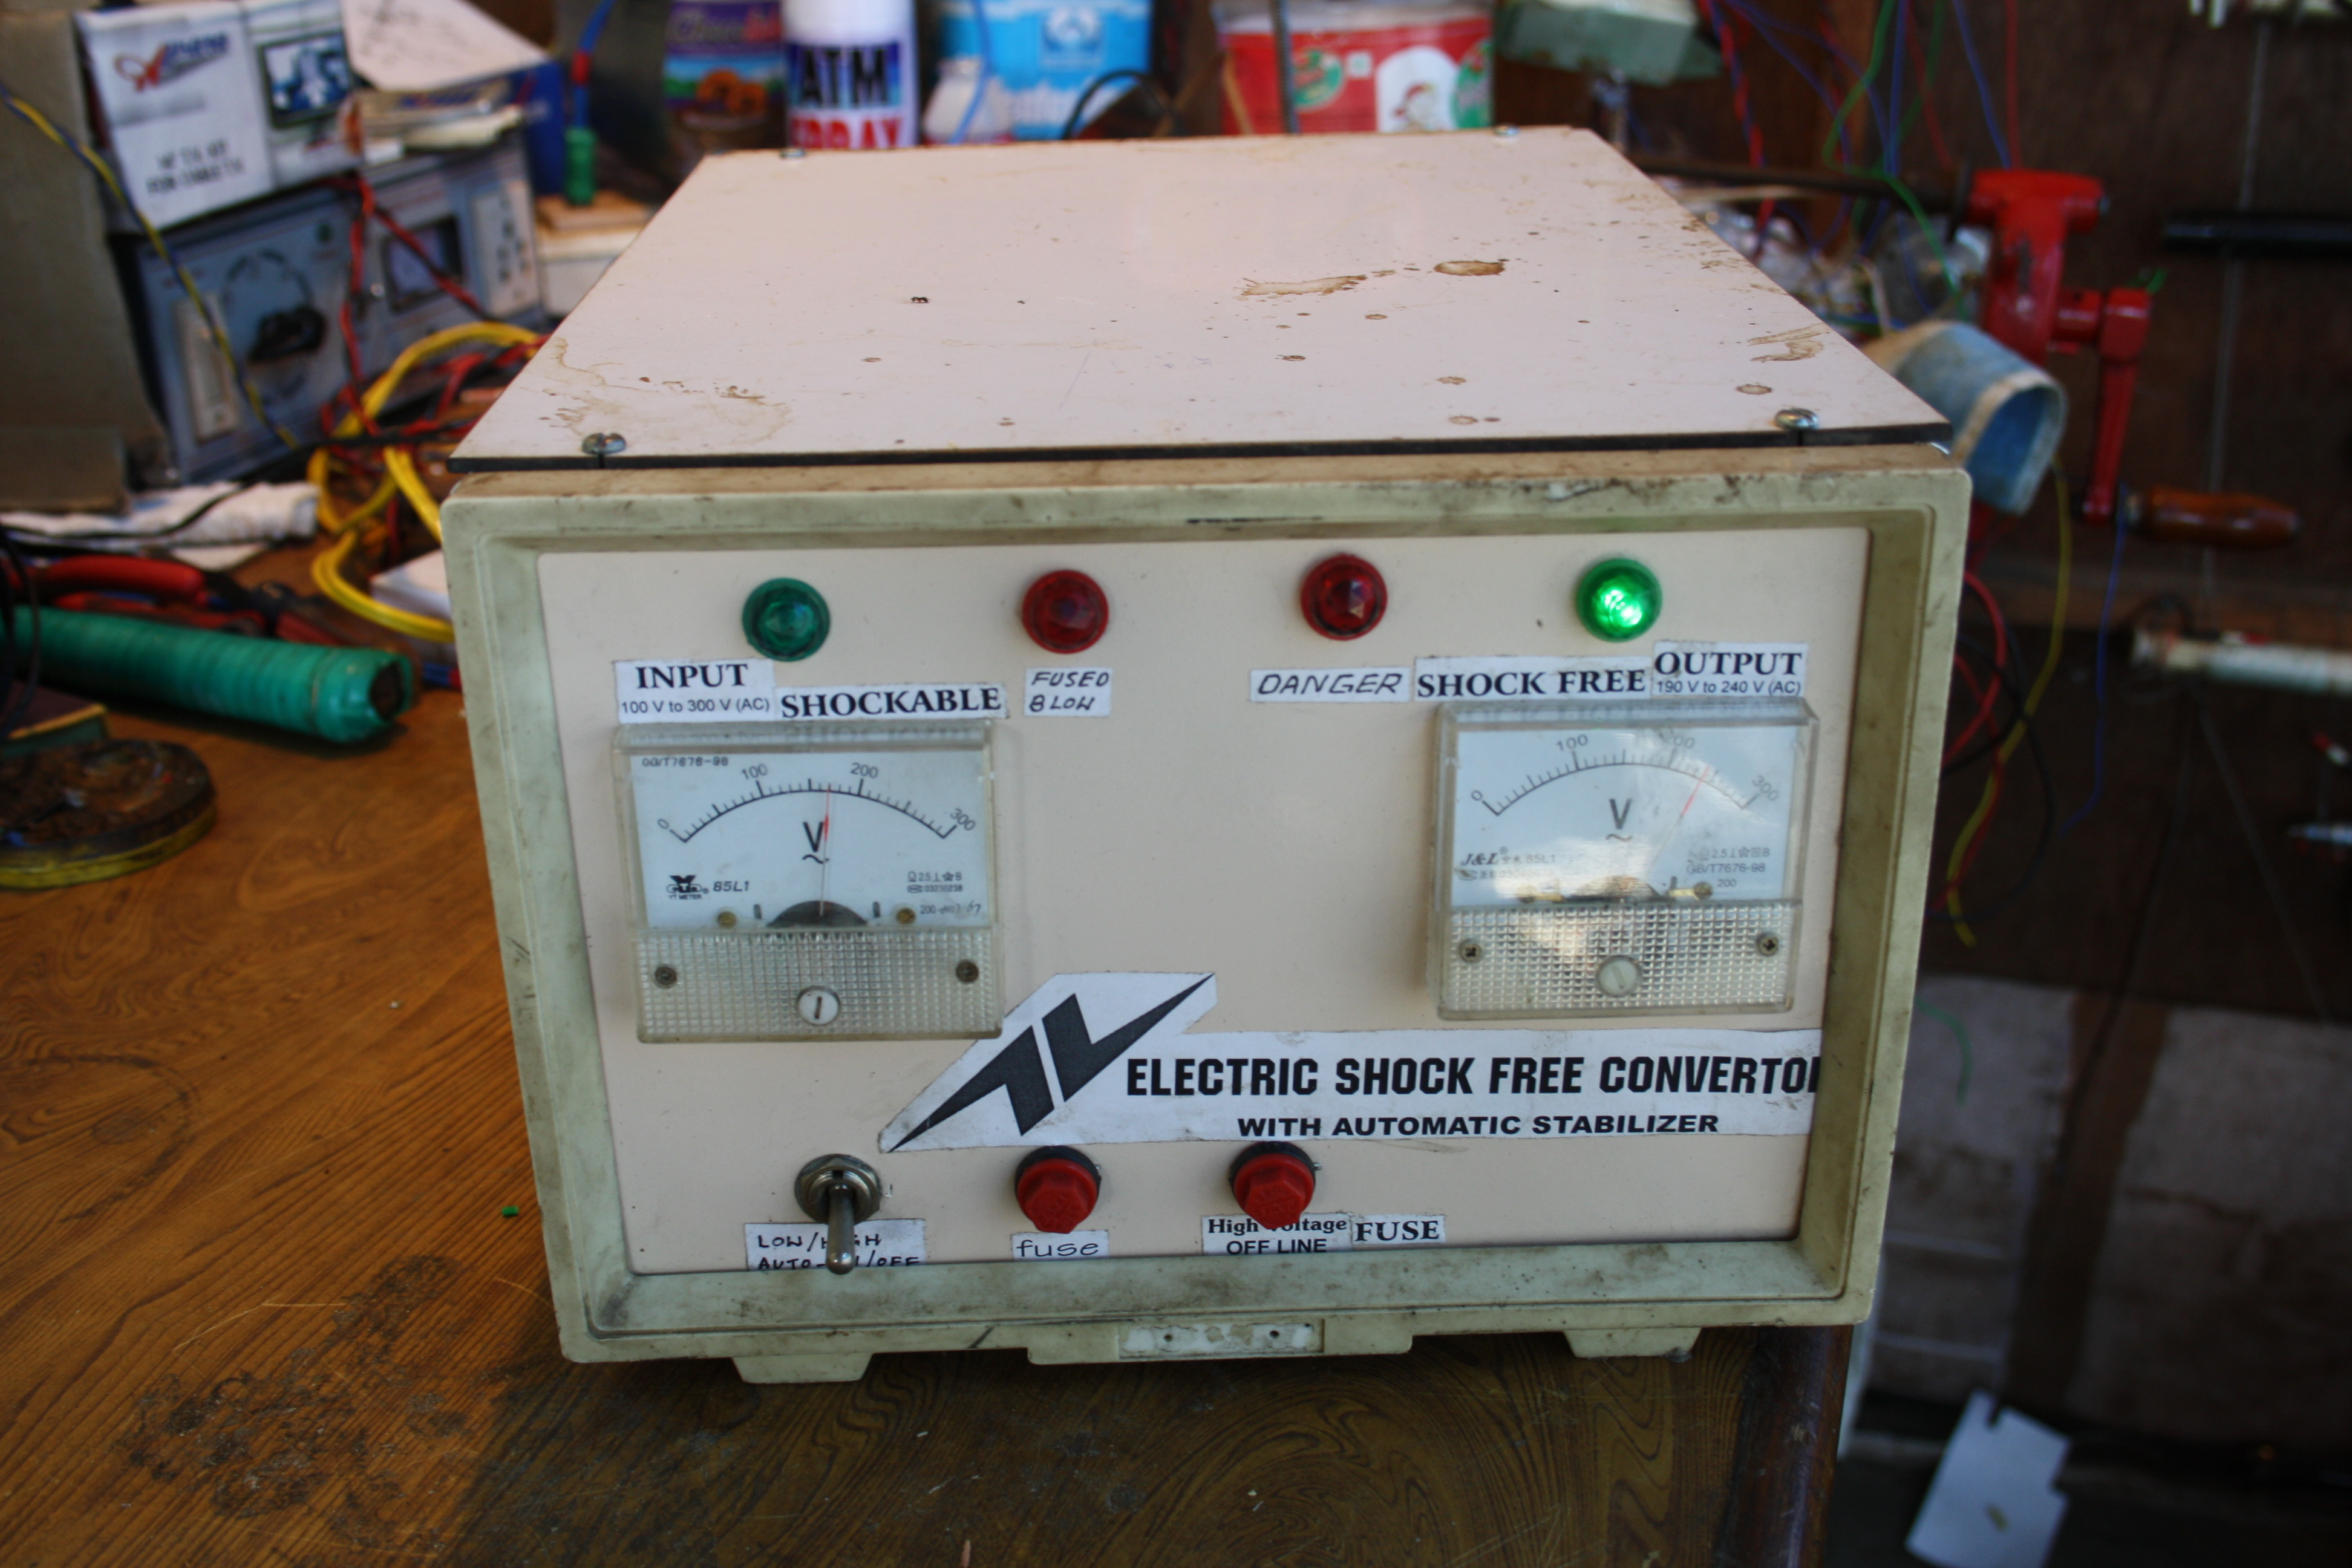 Electric shock proof converter   National Innovation Foundation-India